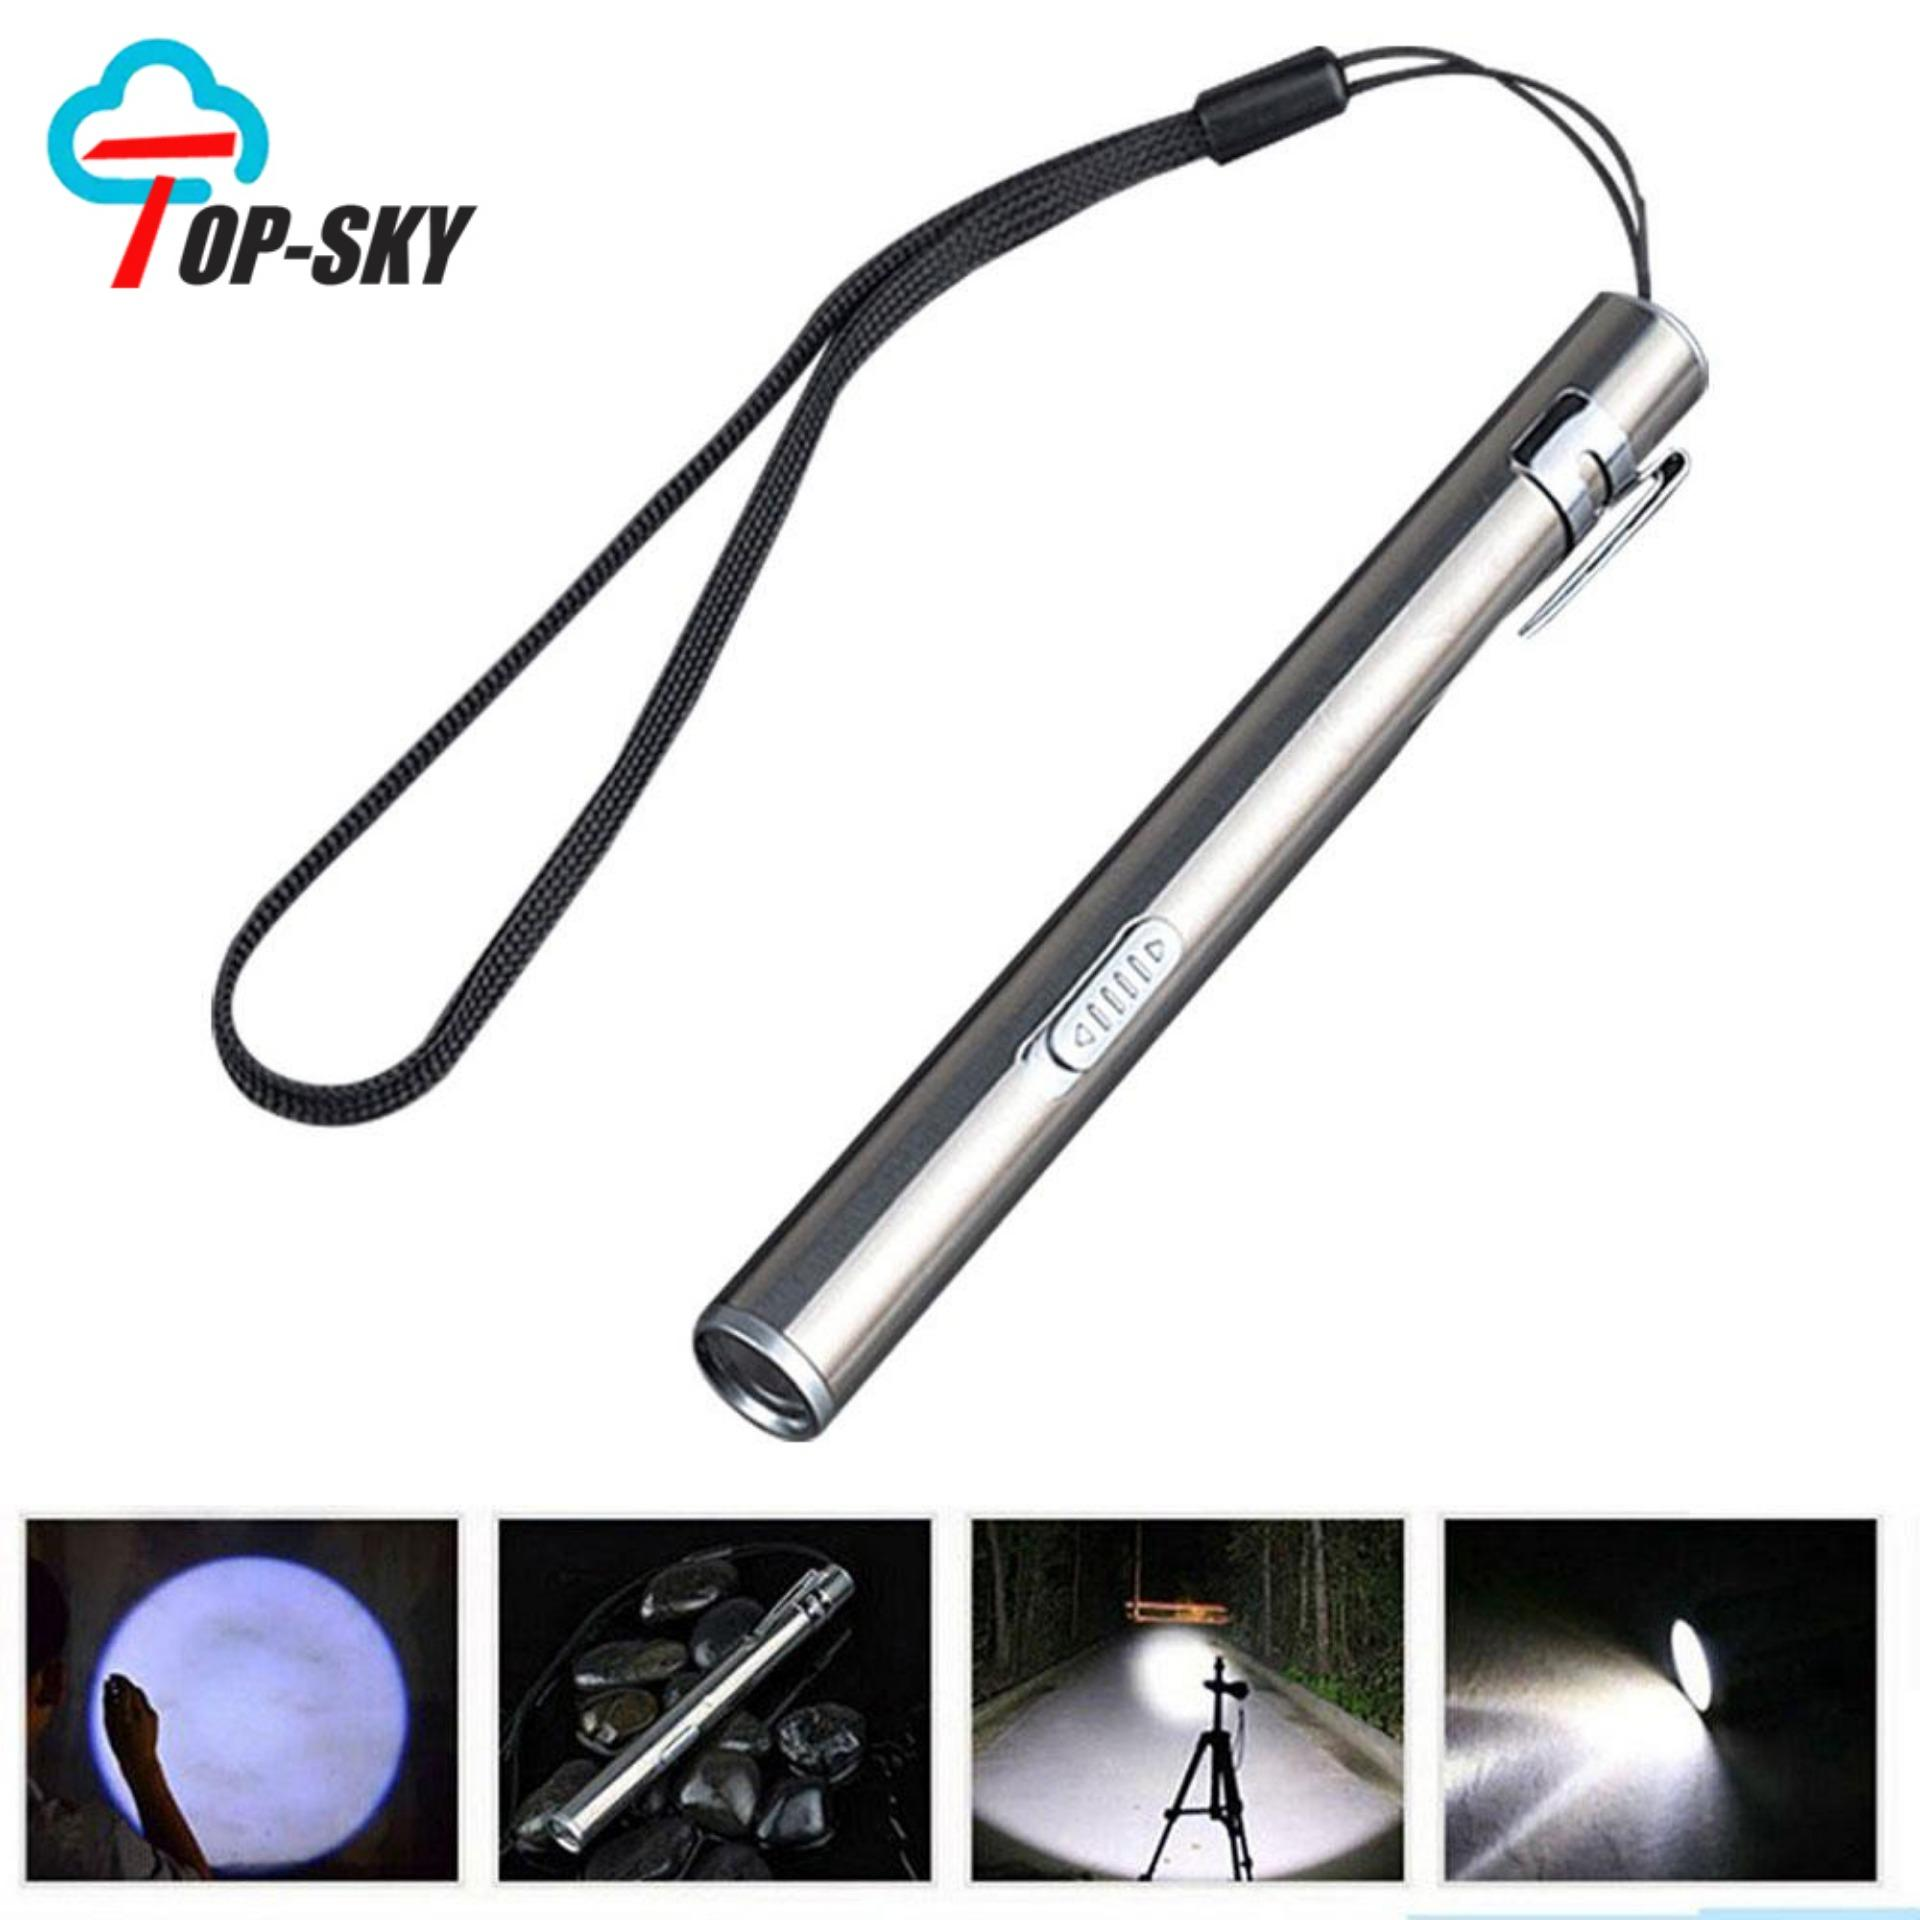 Top-Sky Mini Stainless Steel Usb Rechargeable Flashlight Pen Lights Mini Torch By Topsky.